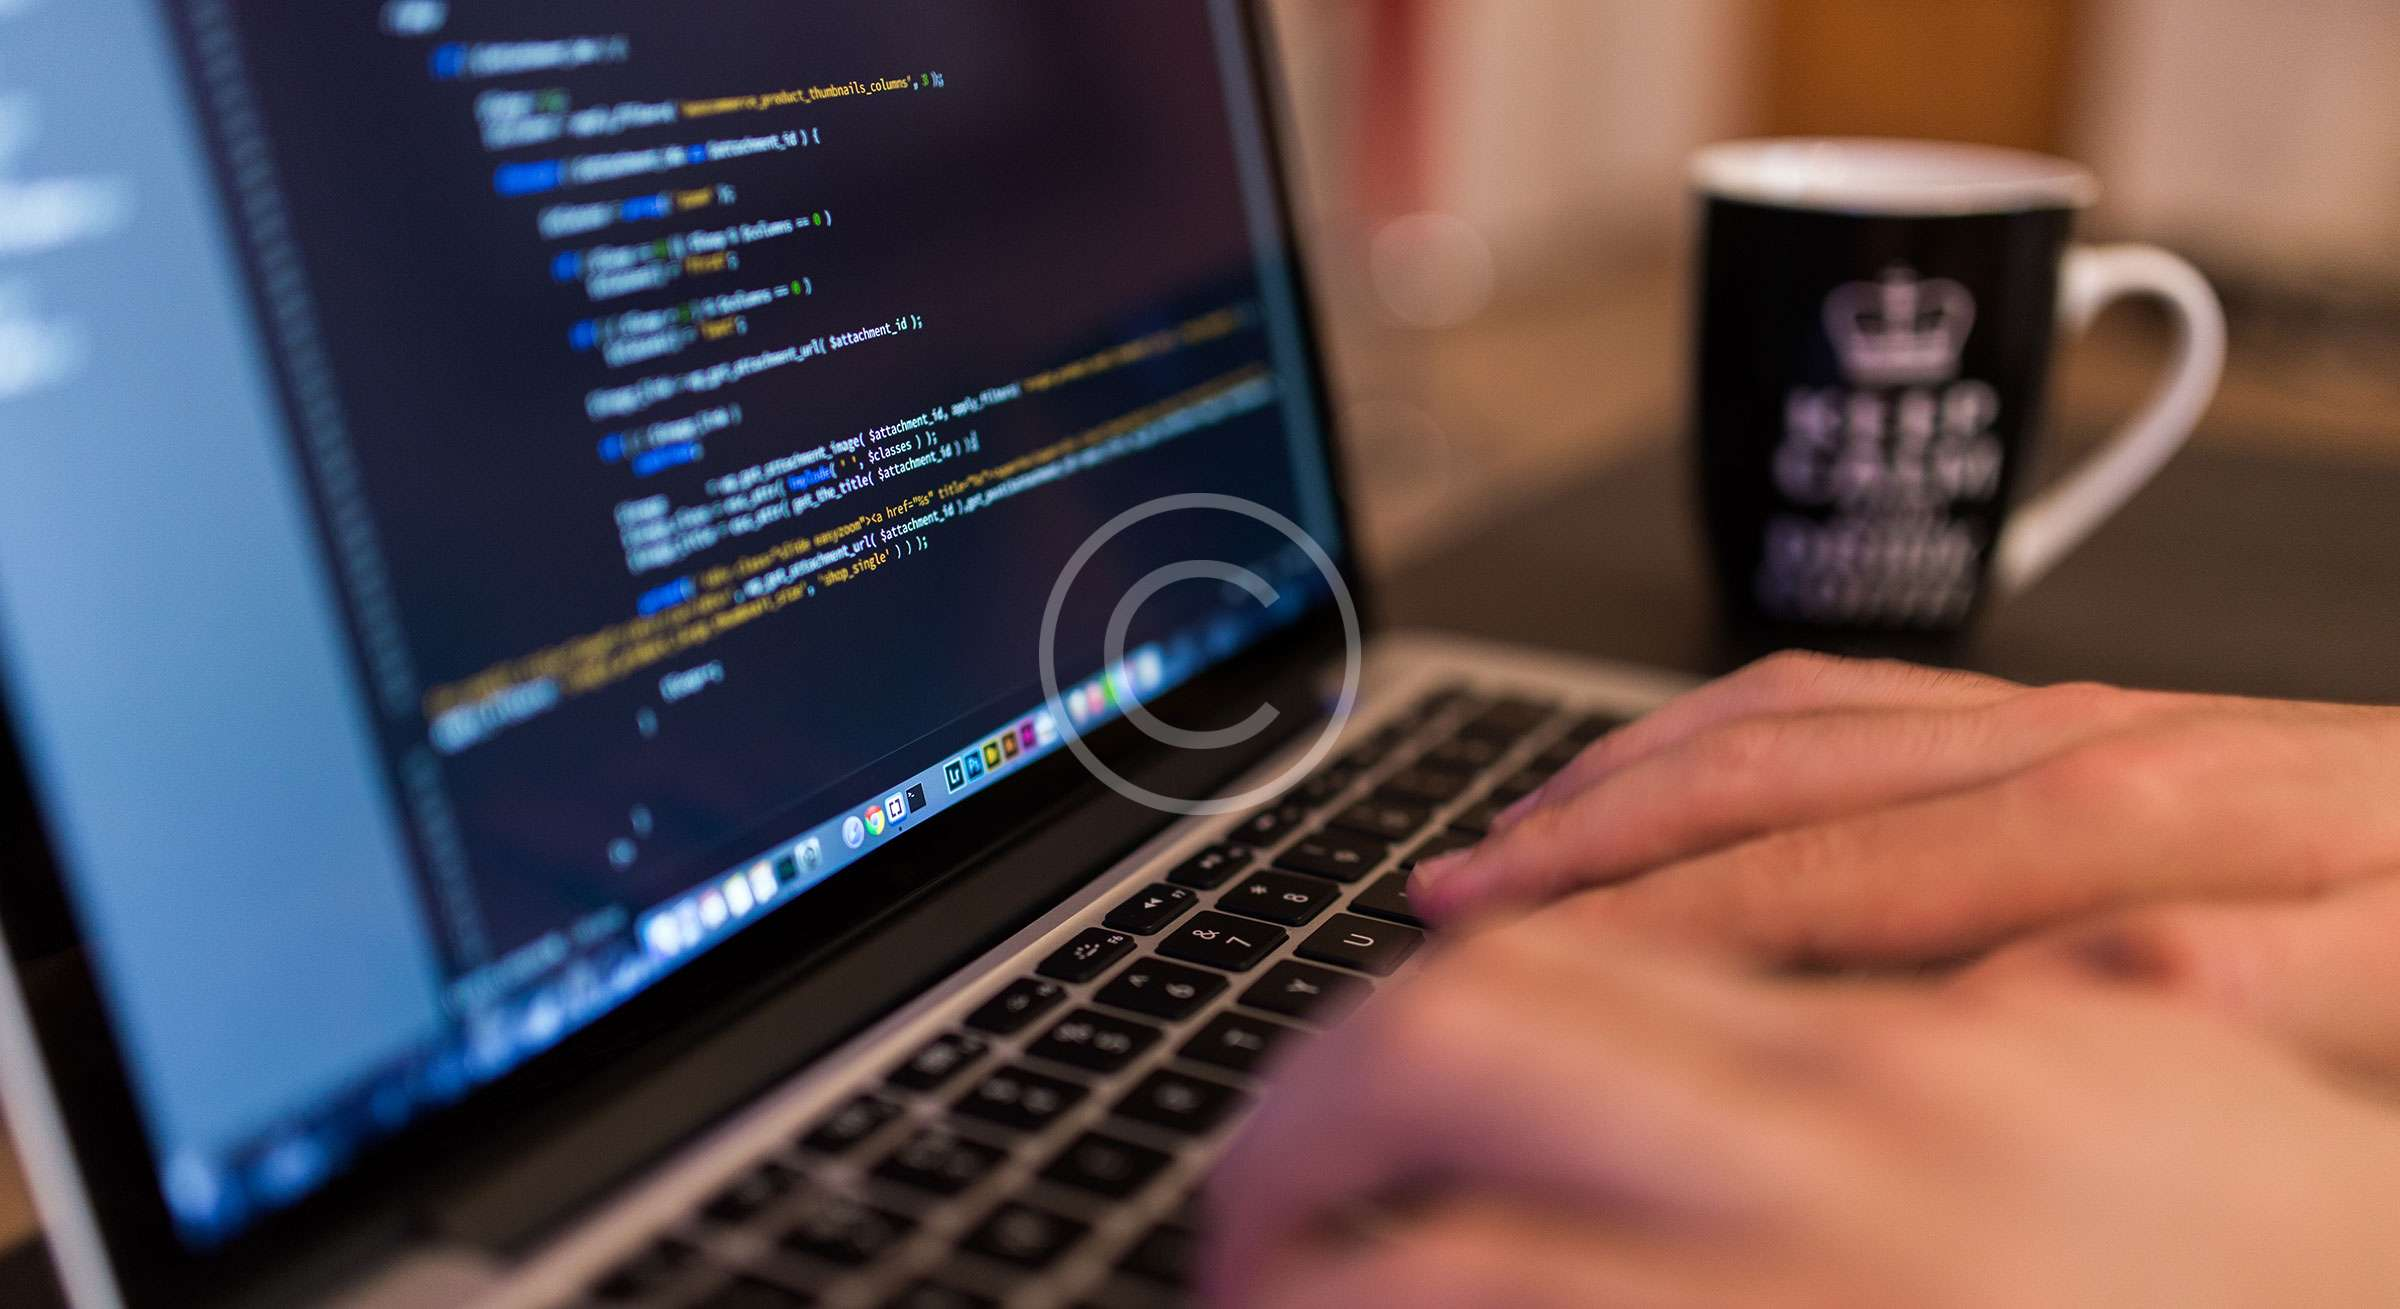 Website security: issues, risks and threats